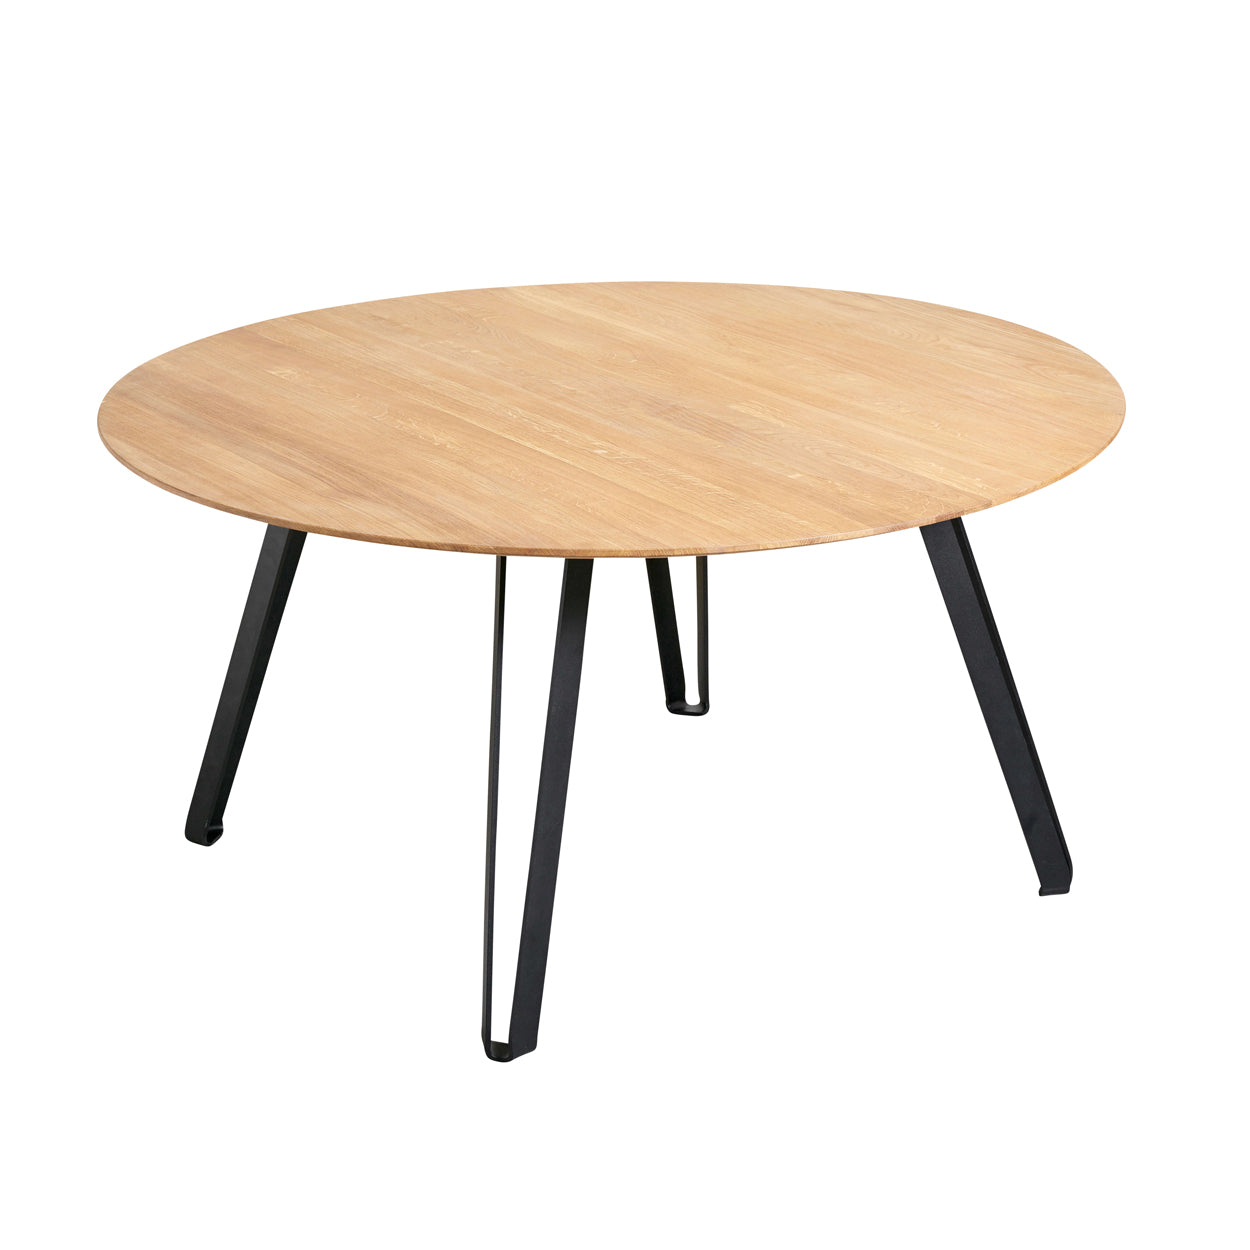 Muubs Spisebord Space Natural Round Ø120cm